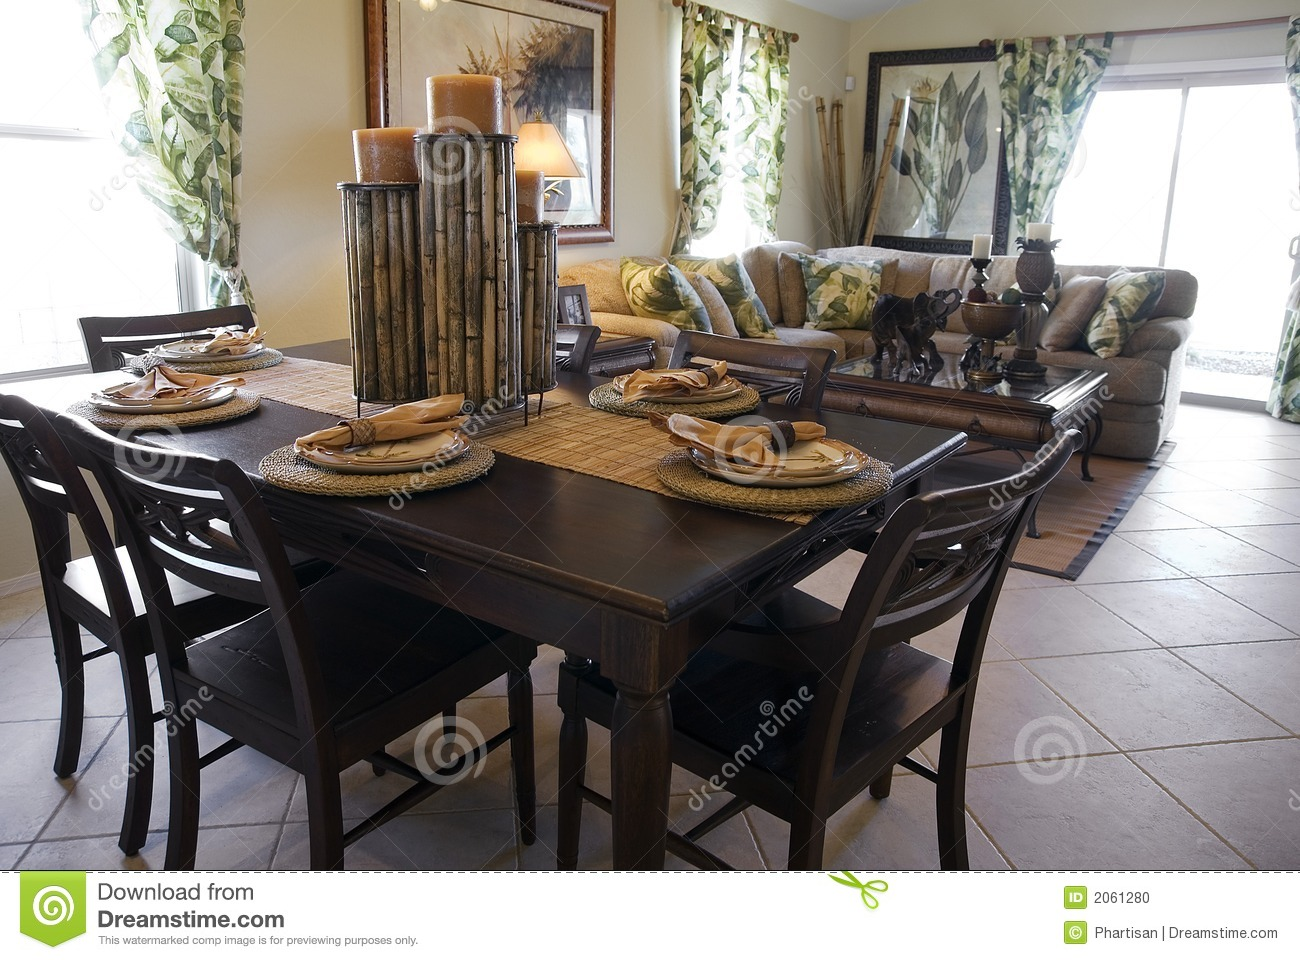 Model home interior design stock photo image 2061280 - Home decor interior design ...